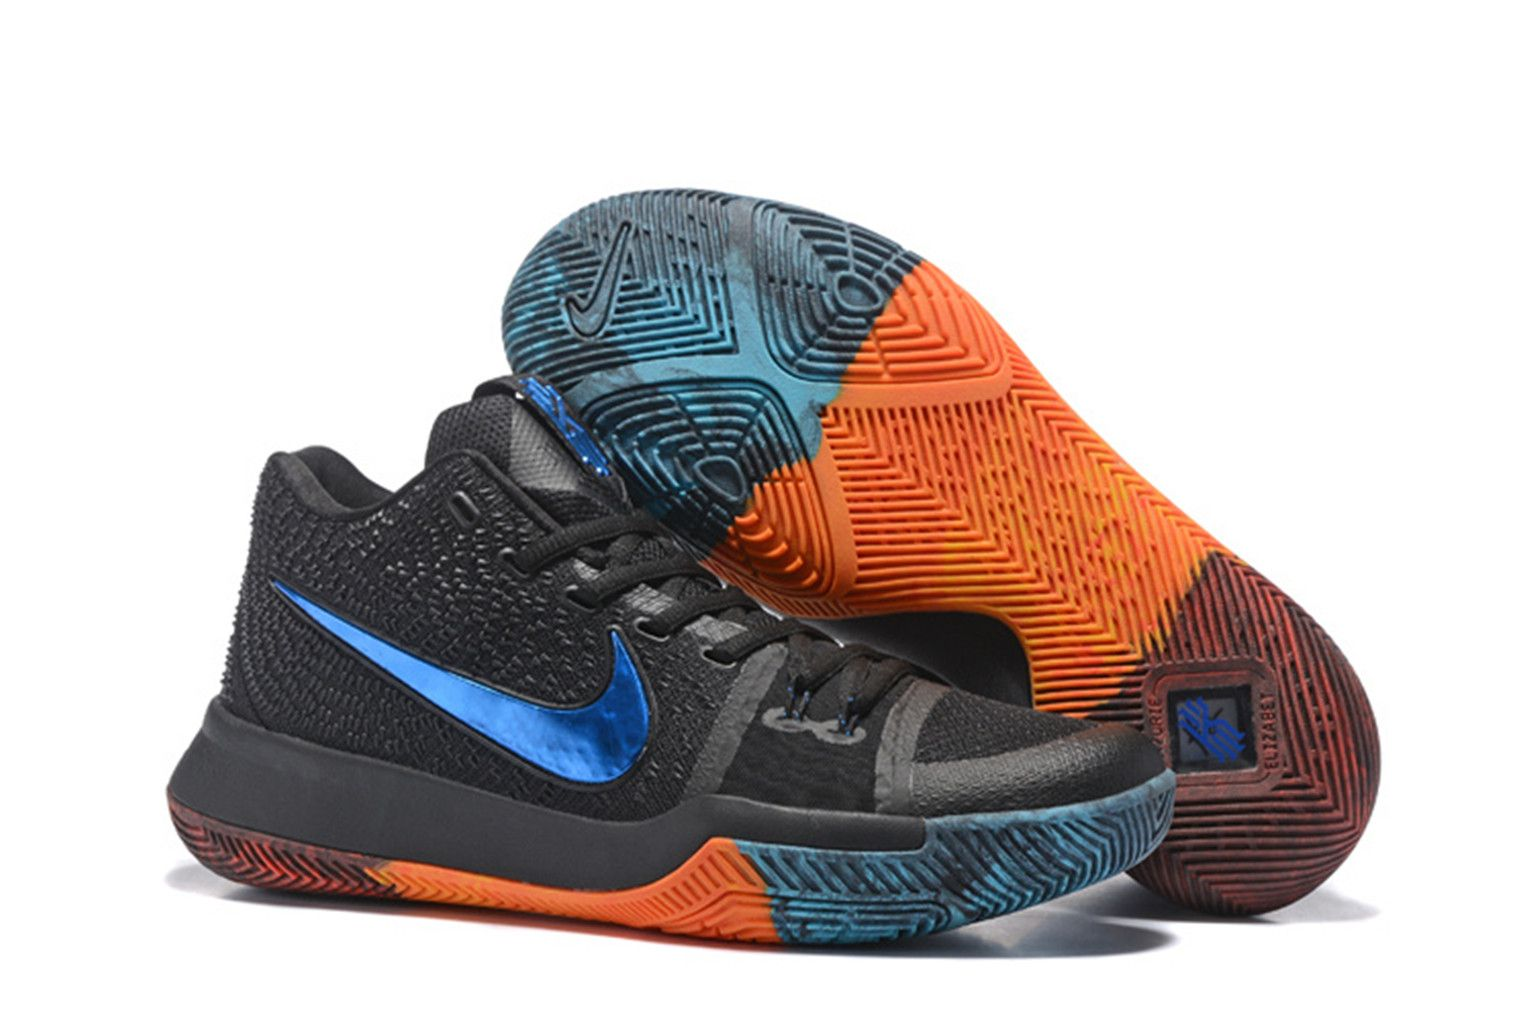 best service 74399 32ca2 ... Cheap Priced Nike Kyrie Irving 3 BHM Sale. NBA Kyrie Irving 3 BHM  Basketball Shoes on www.nbakobe12.com